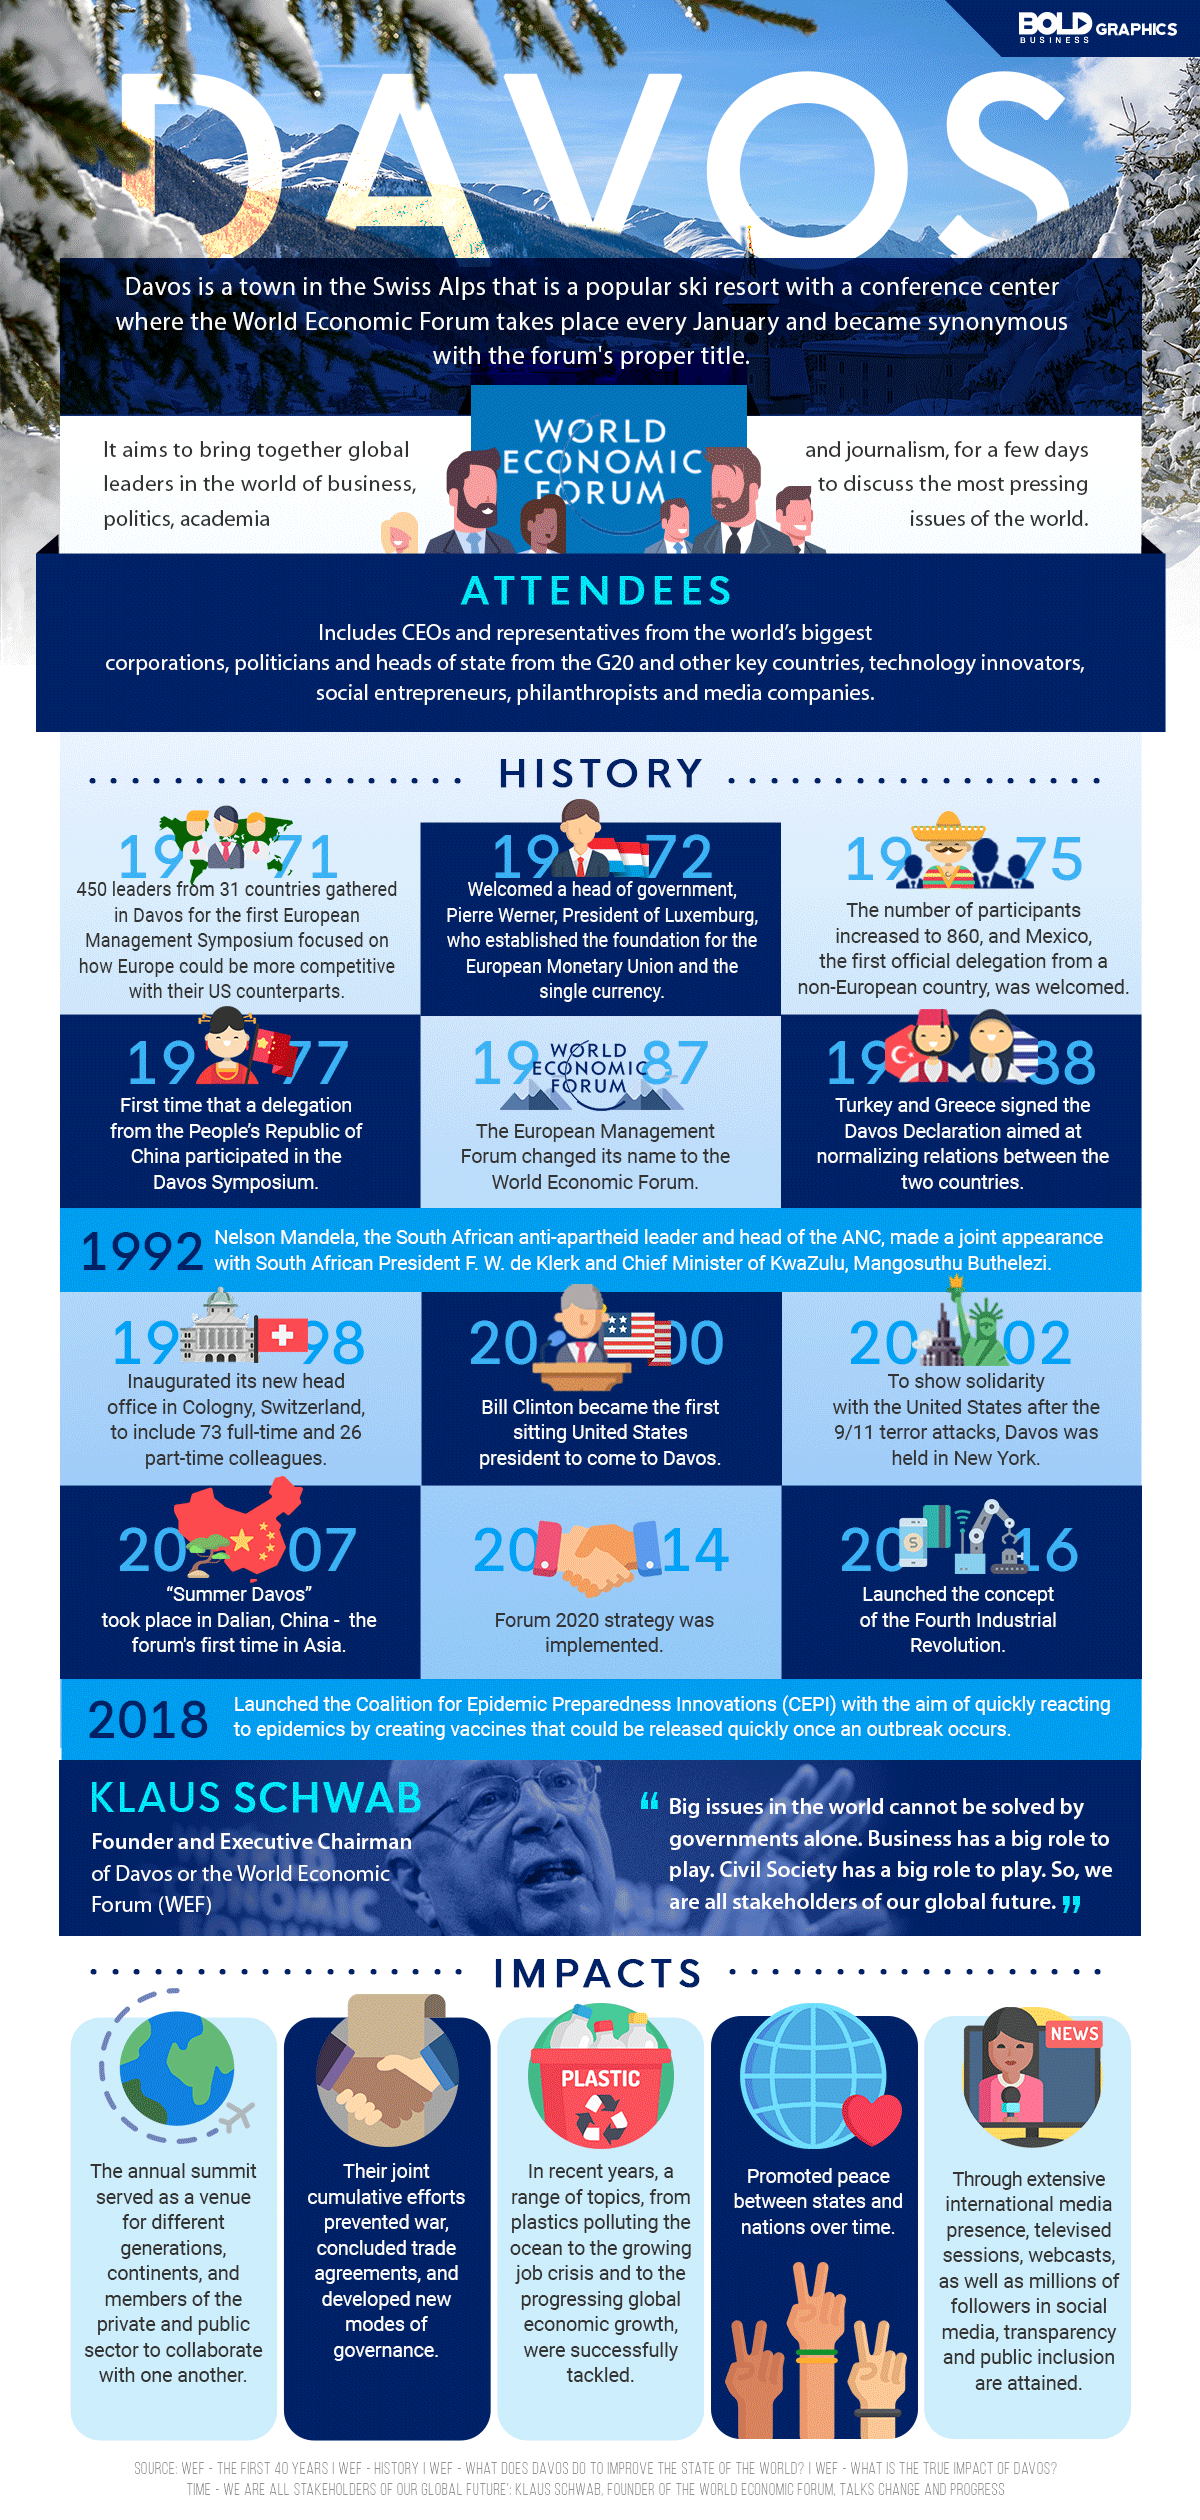 infographic about the history of world economic forum and how davos became synonymous to the event